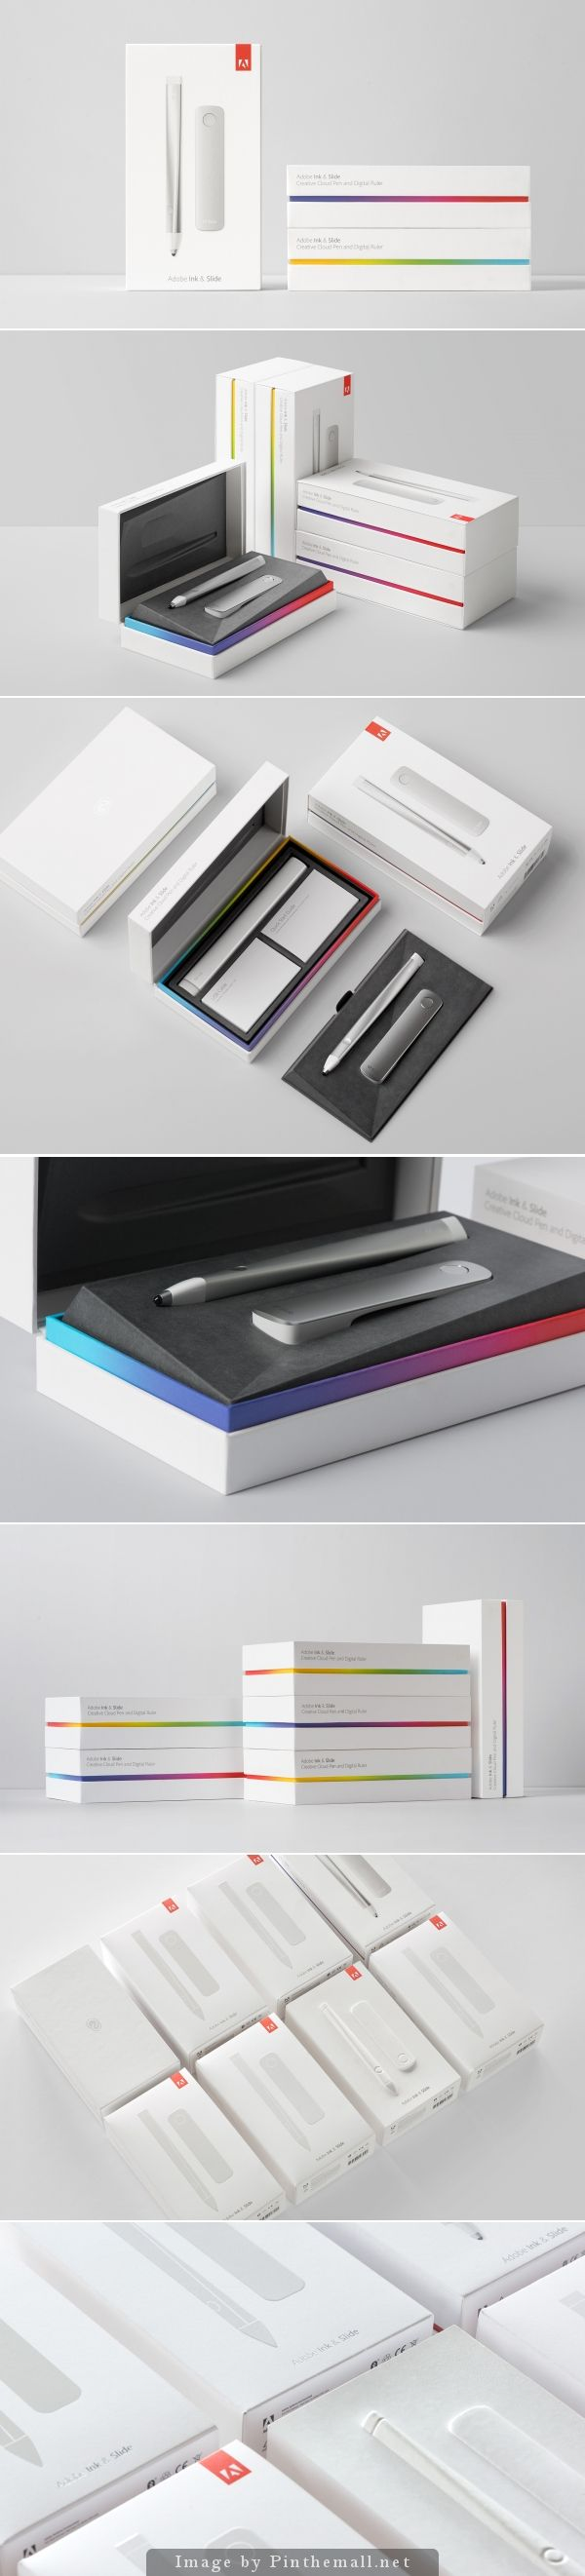 Adobe Ink Slide packaging. Packaging design by Character